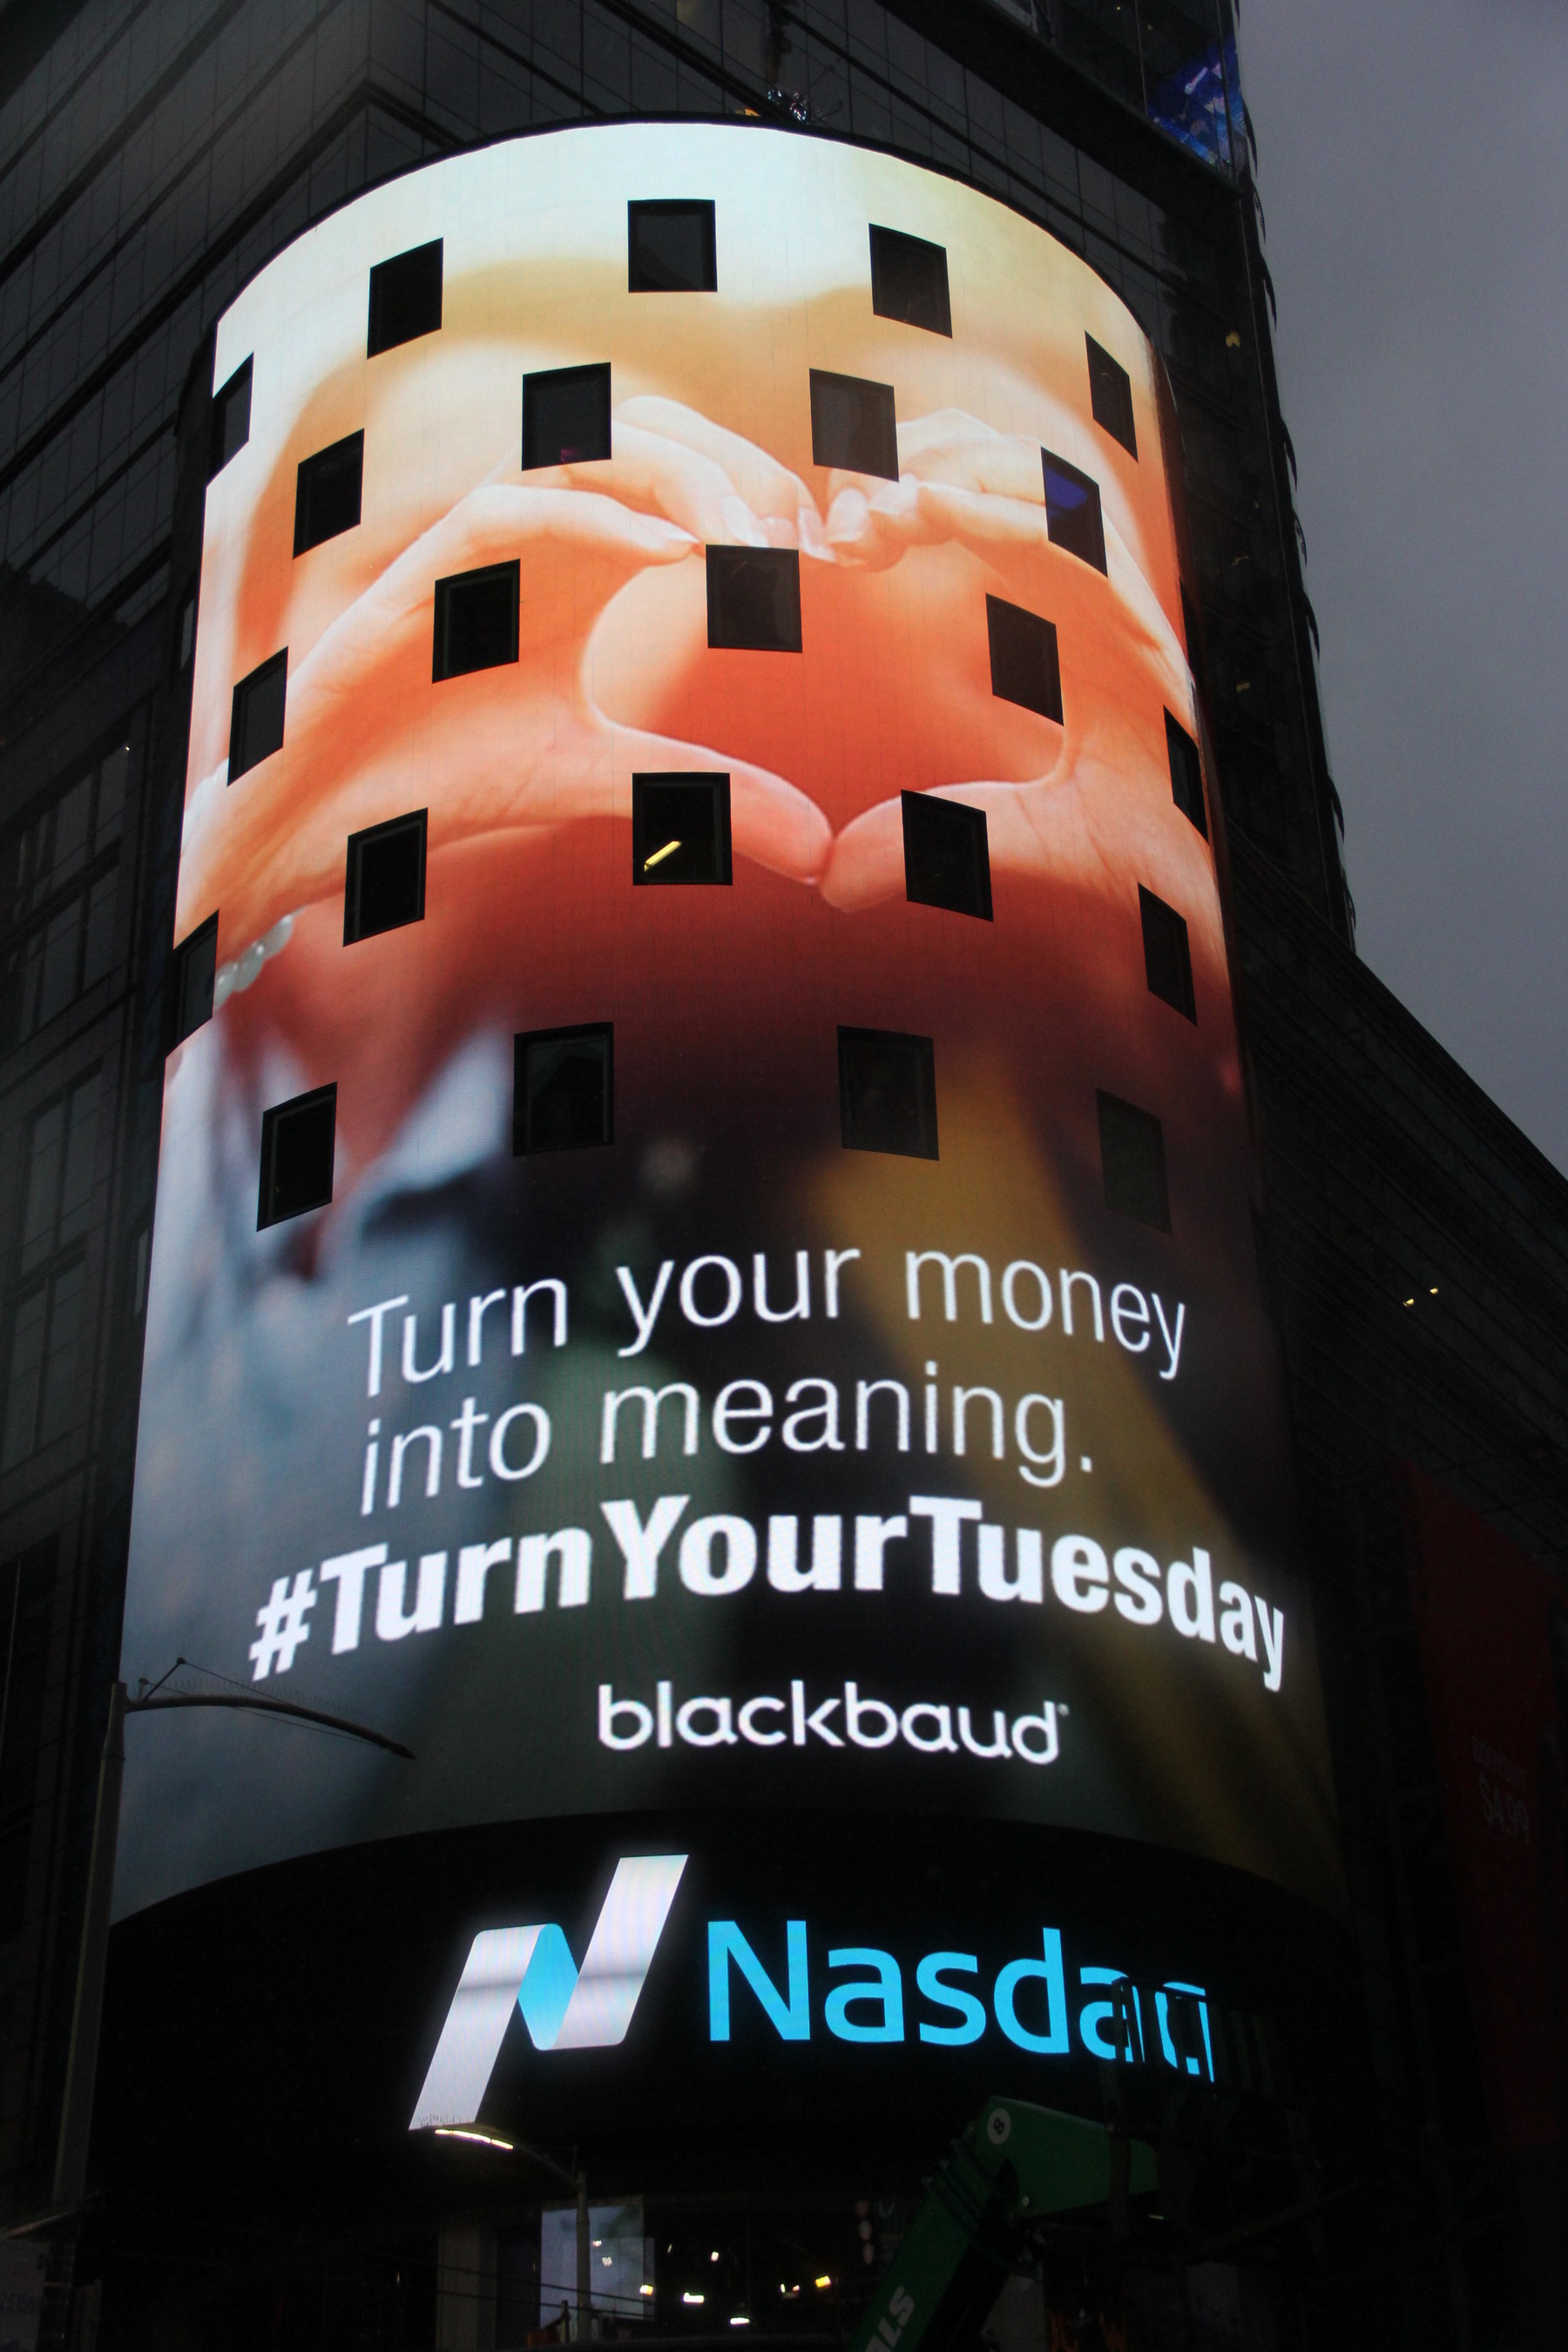 Blackbaud is takes over the Nasdaq tower at Times Square to promote what its customers are doing for #GivingTuesday. Turn your money into meaning with Blackbaud on this #GivingTuesday